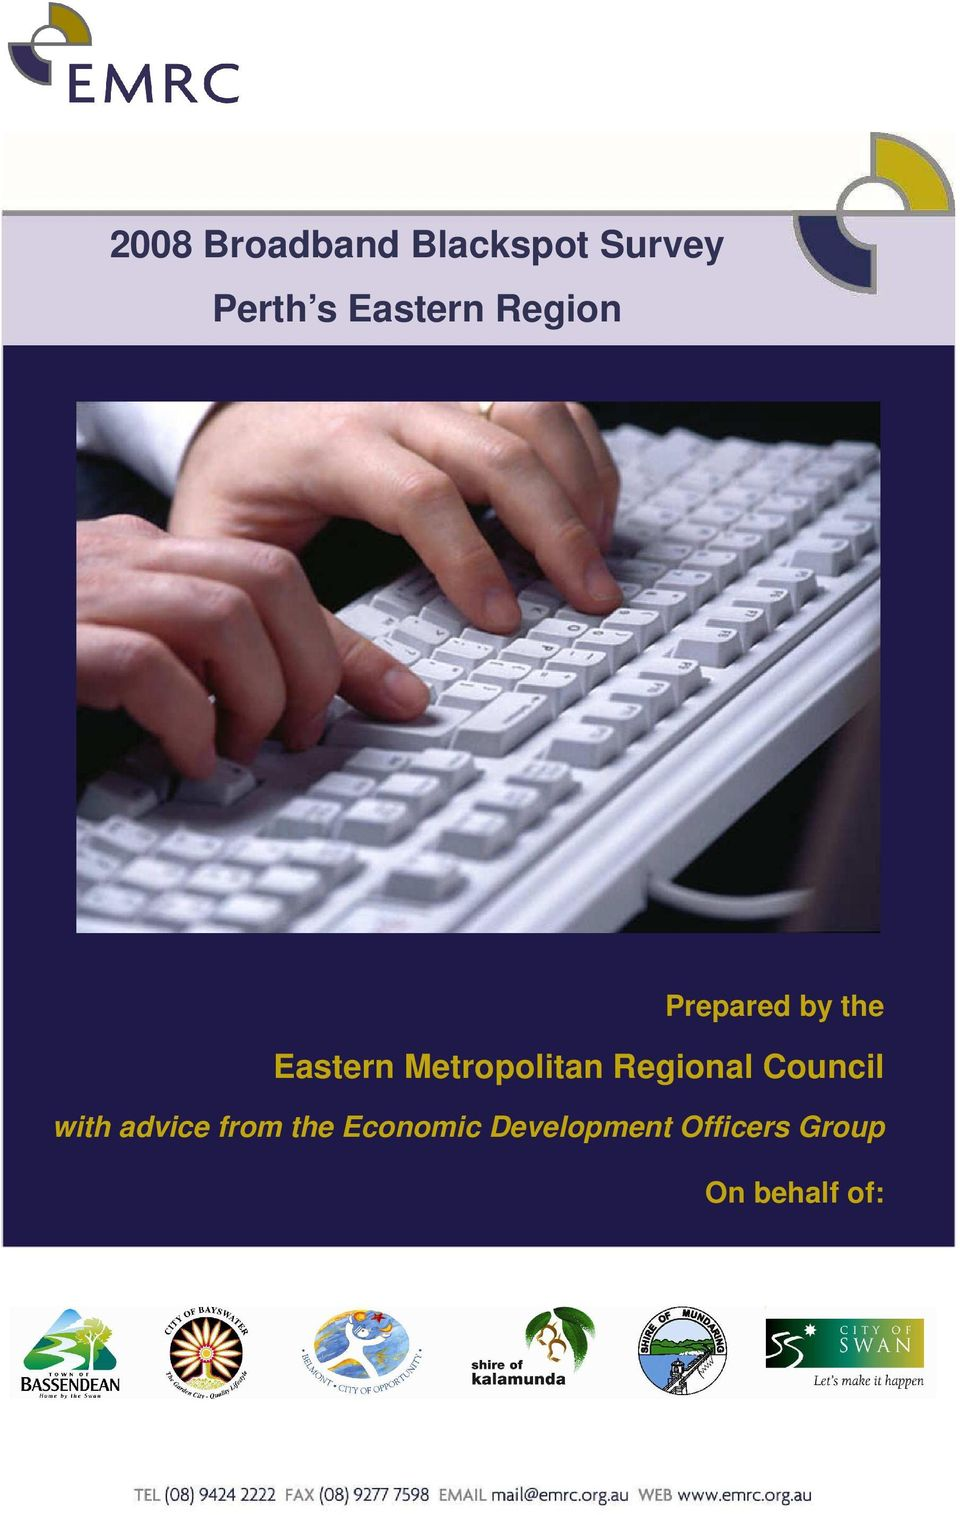 Metropolitan Regional Council with advice